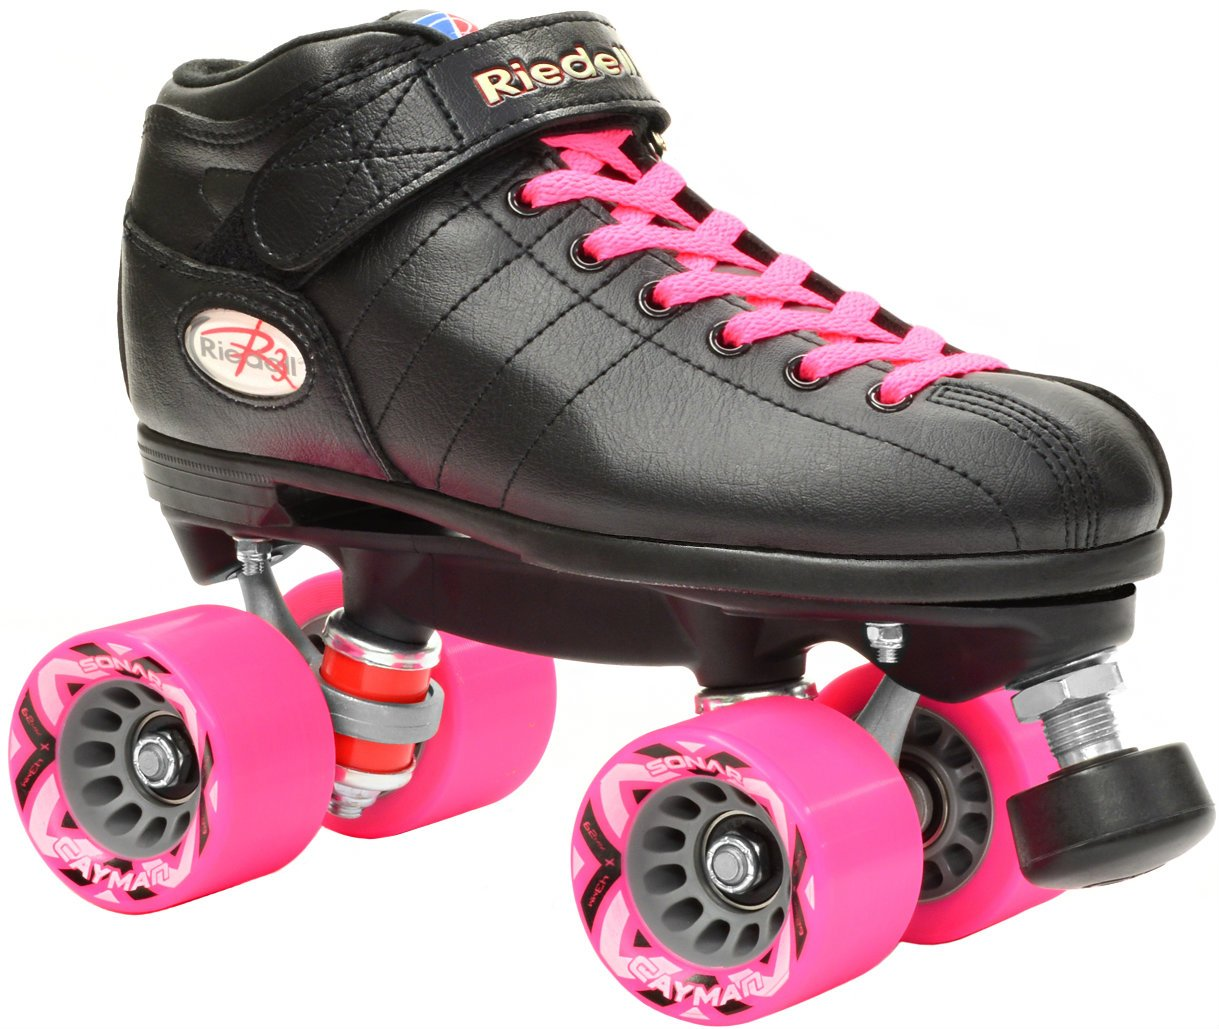 Riedell R3 Black & Pink Demon w/ Groove Quad Roller Derby Speed Skates w/ 2 Pair of Laces (Pink & Black) (Mens 8 / Ladies 9)